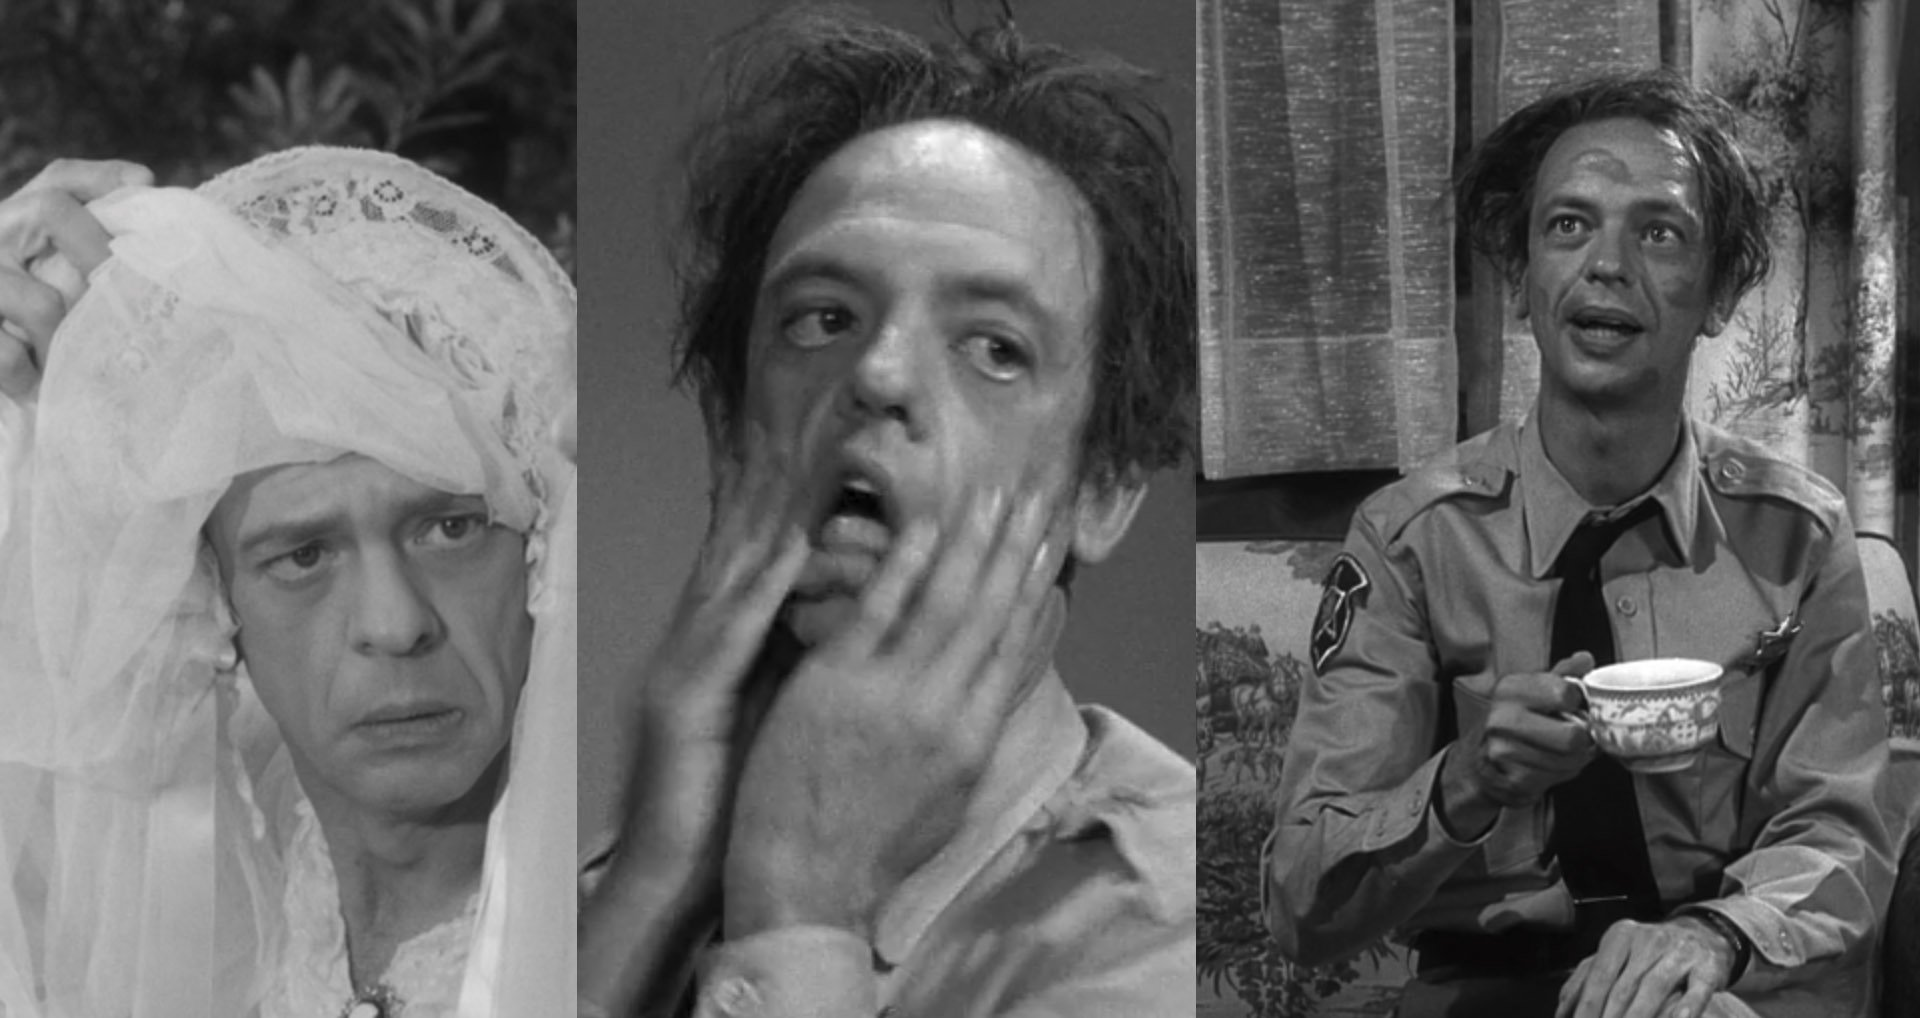 Do you actually think Barney Fife is funnier than anybody ...